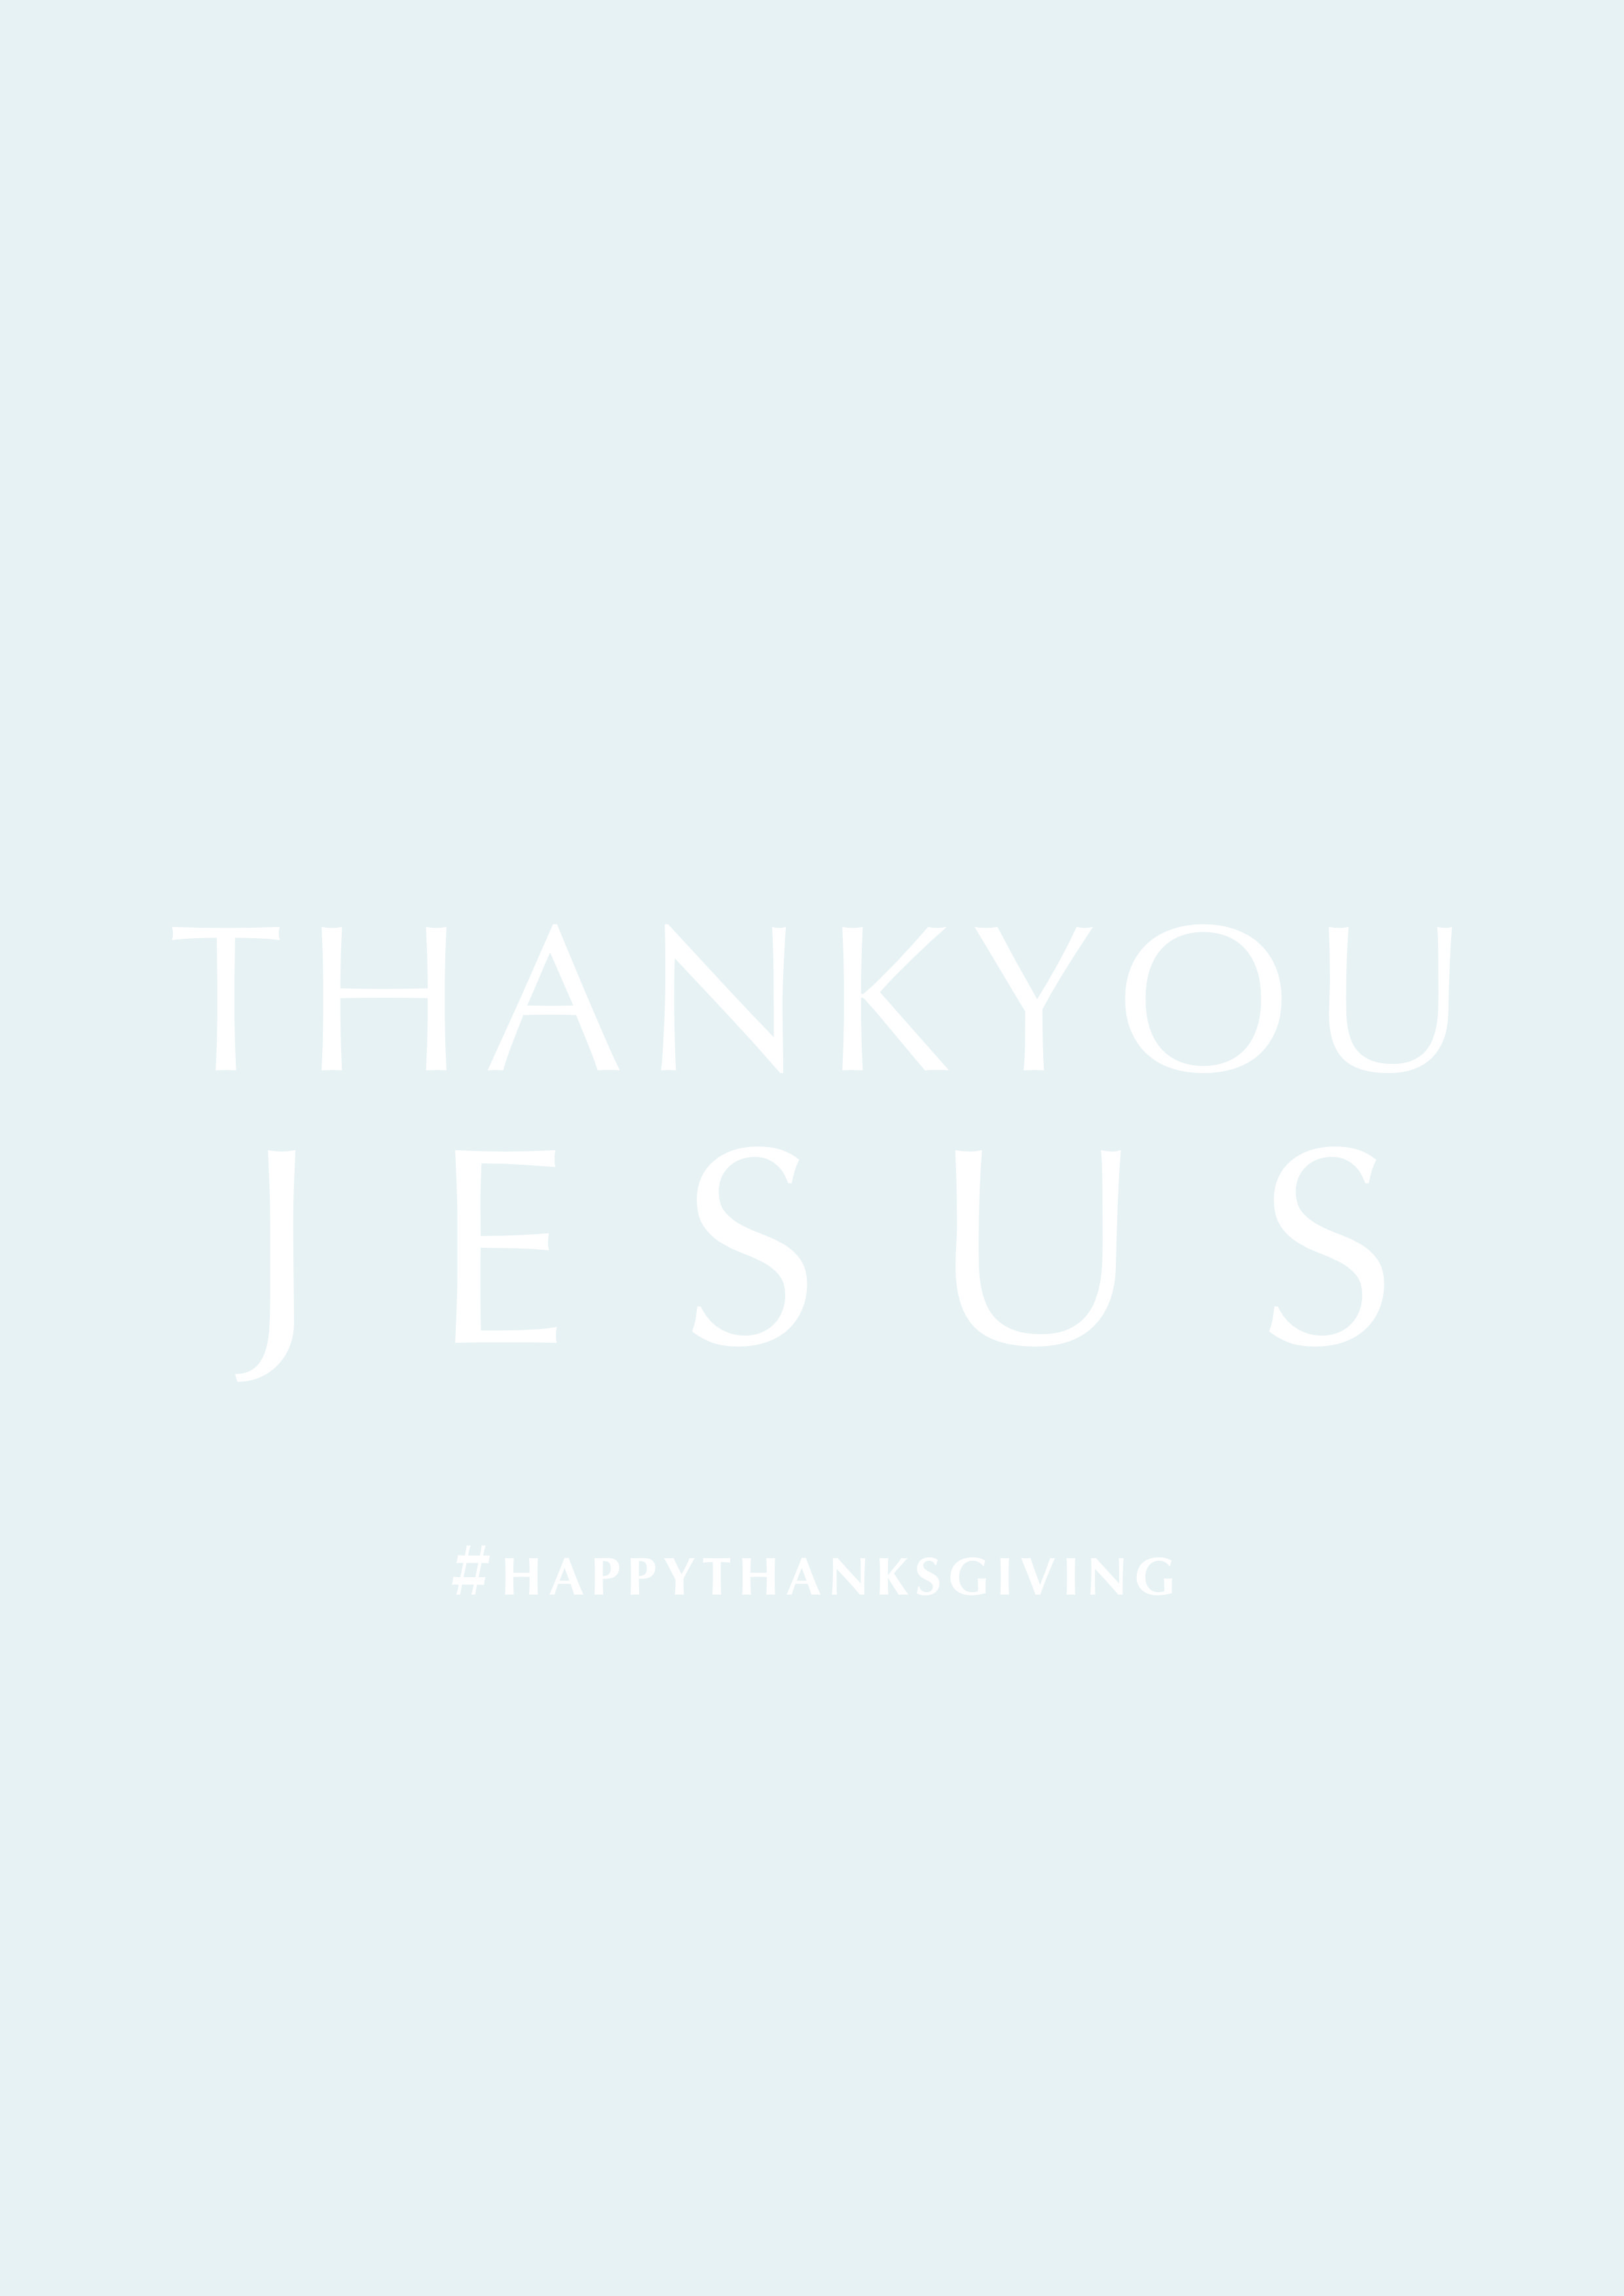 Happy Thanksgiving Printable Jesus Christian Quotes Christ Like White Minimalist Fall Wallpaper Iph Christian Quotes Thanksgiving Quotes Autumn Quotes